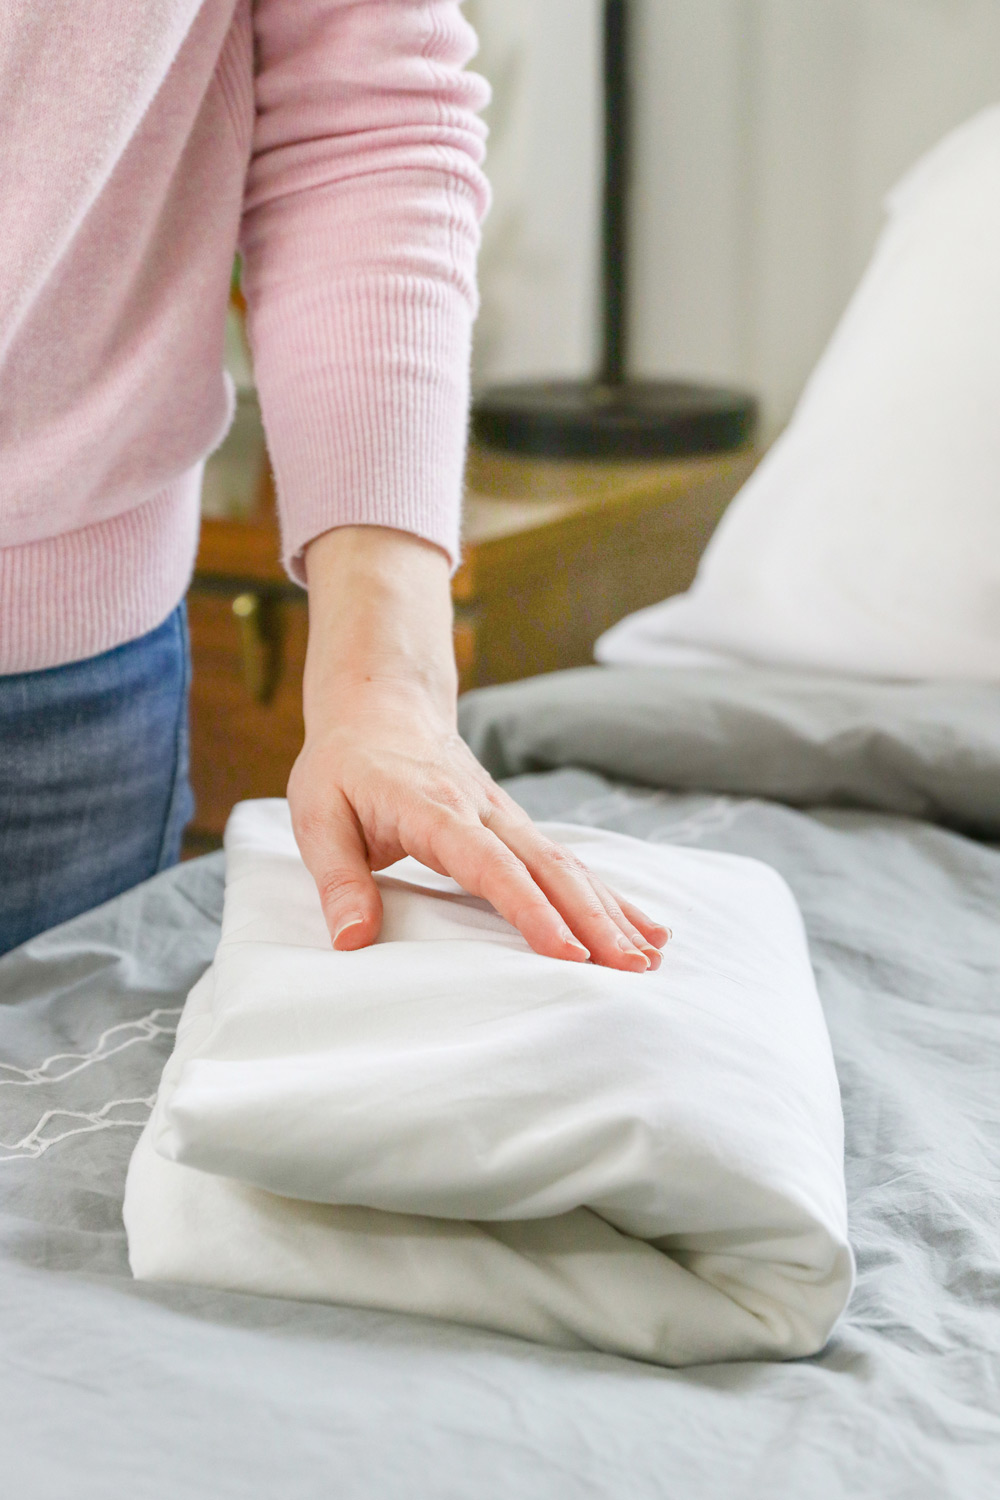 How To Fold A Fitted Sheet (Video Tutorial)